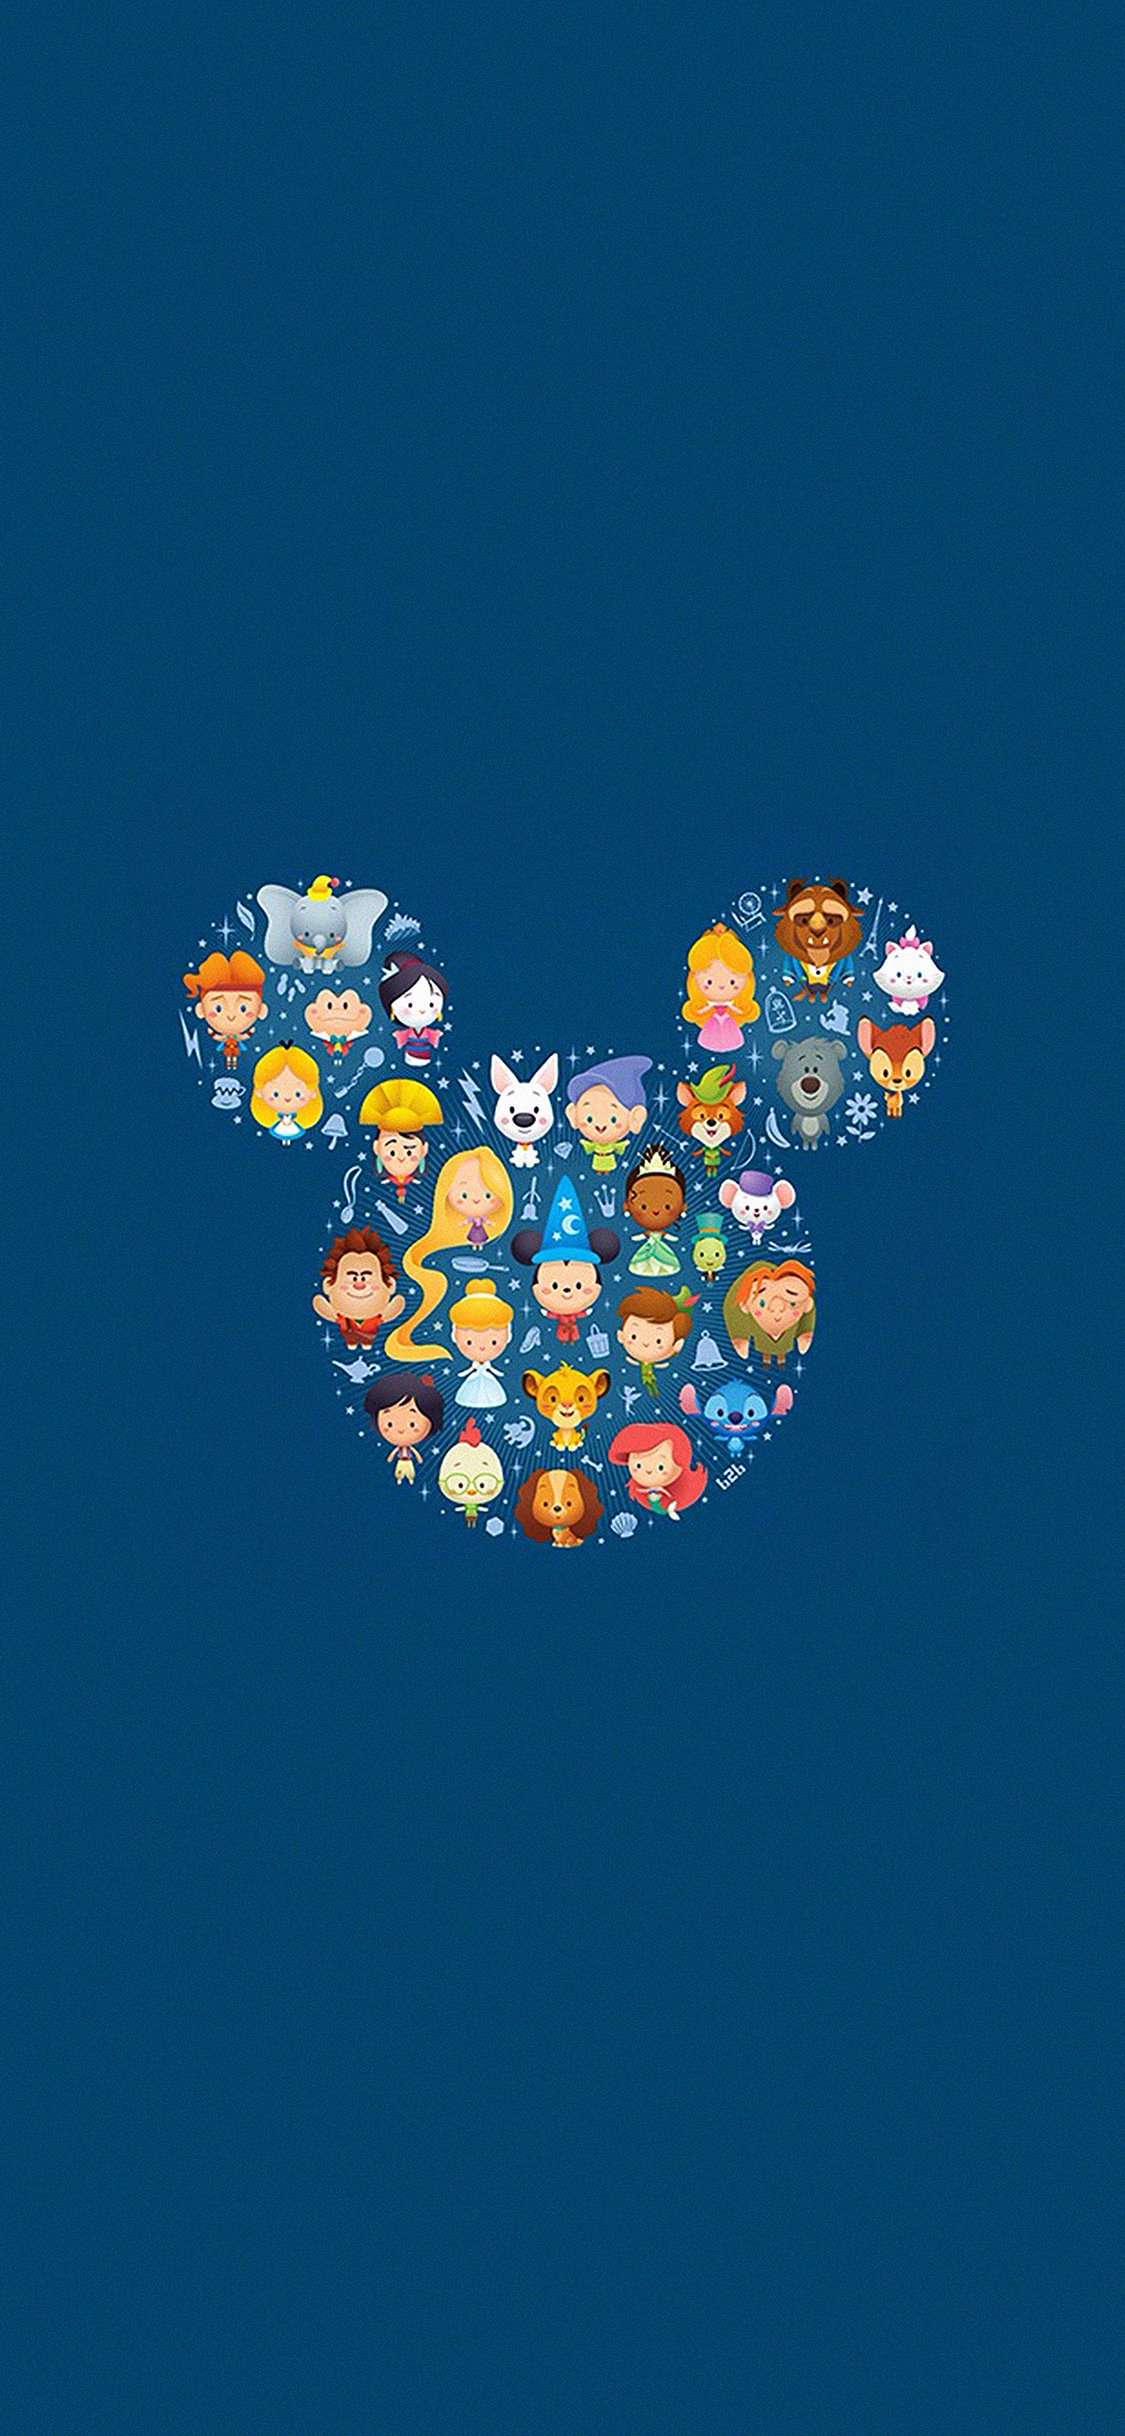 Disney Art Character Cute Iphone Wallpapers Free Download